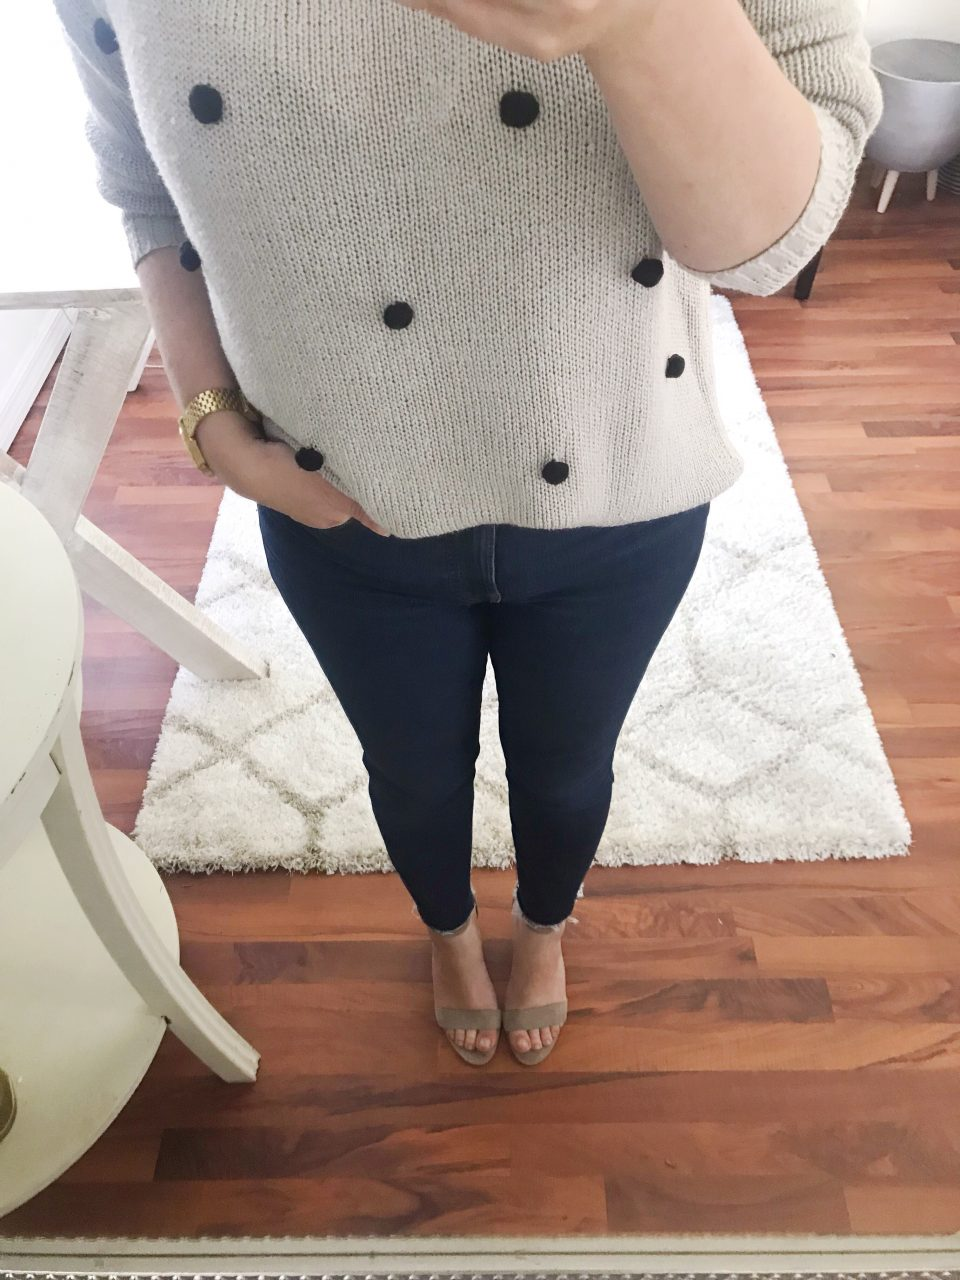 Style blogger wearing a gray sweater accented with black pom-poms and Everlane authentic stretch hi-rise skinny jeans in dark blue with taupe suede Vince Camuto block heel sandals.